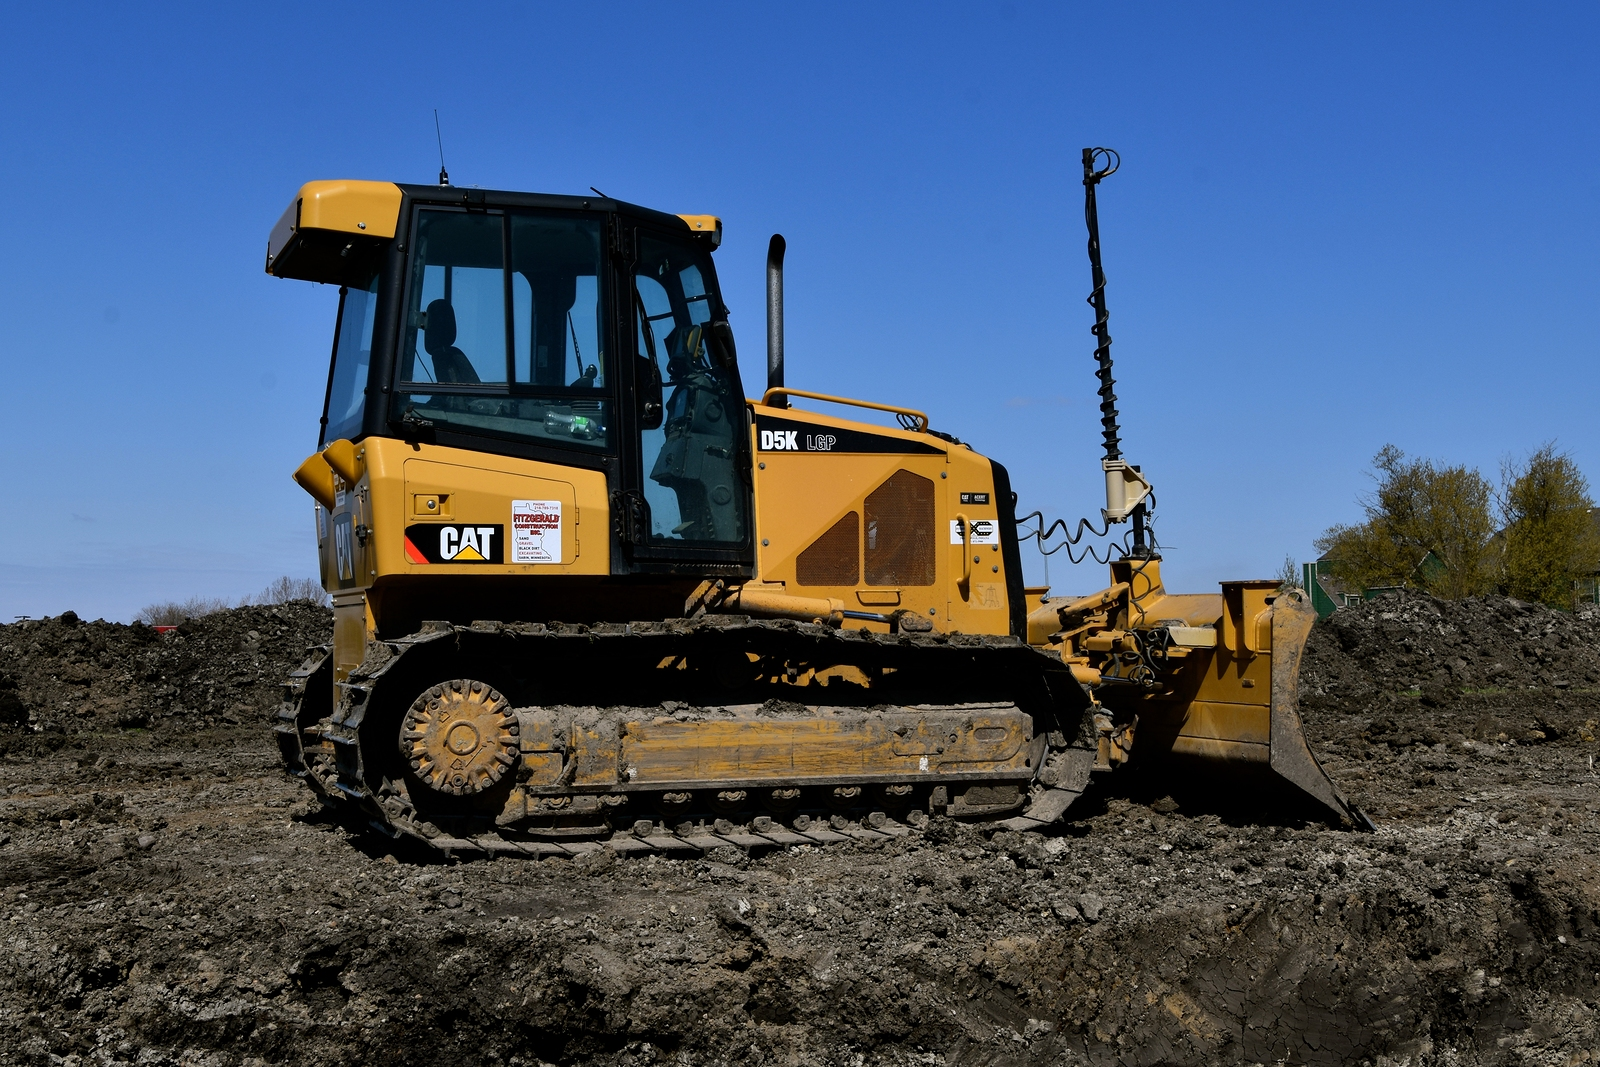 Excavator Size Guide: How to Choose the Right Cat Excavator